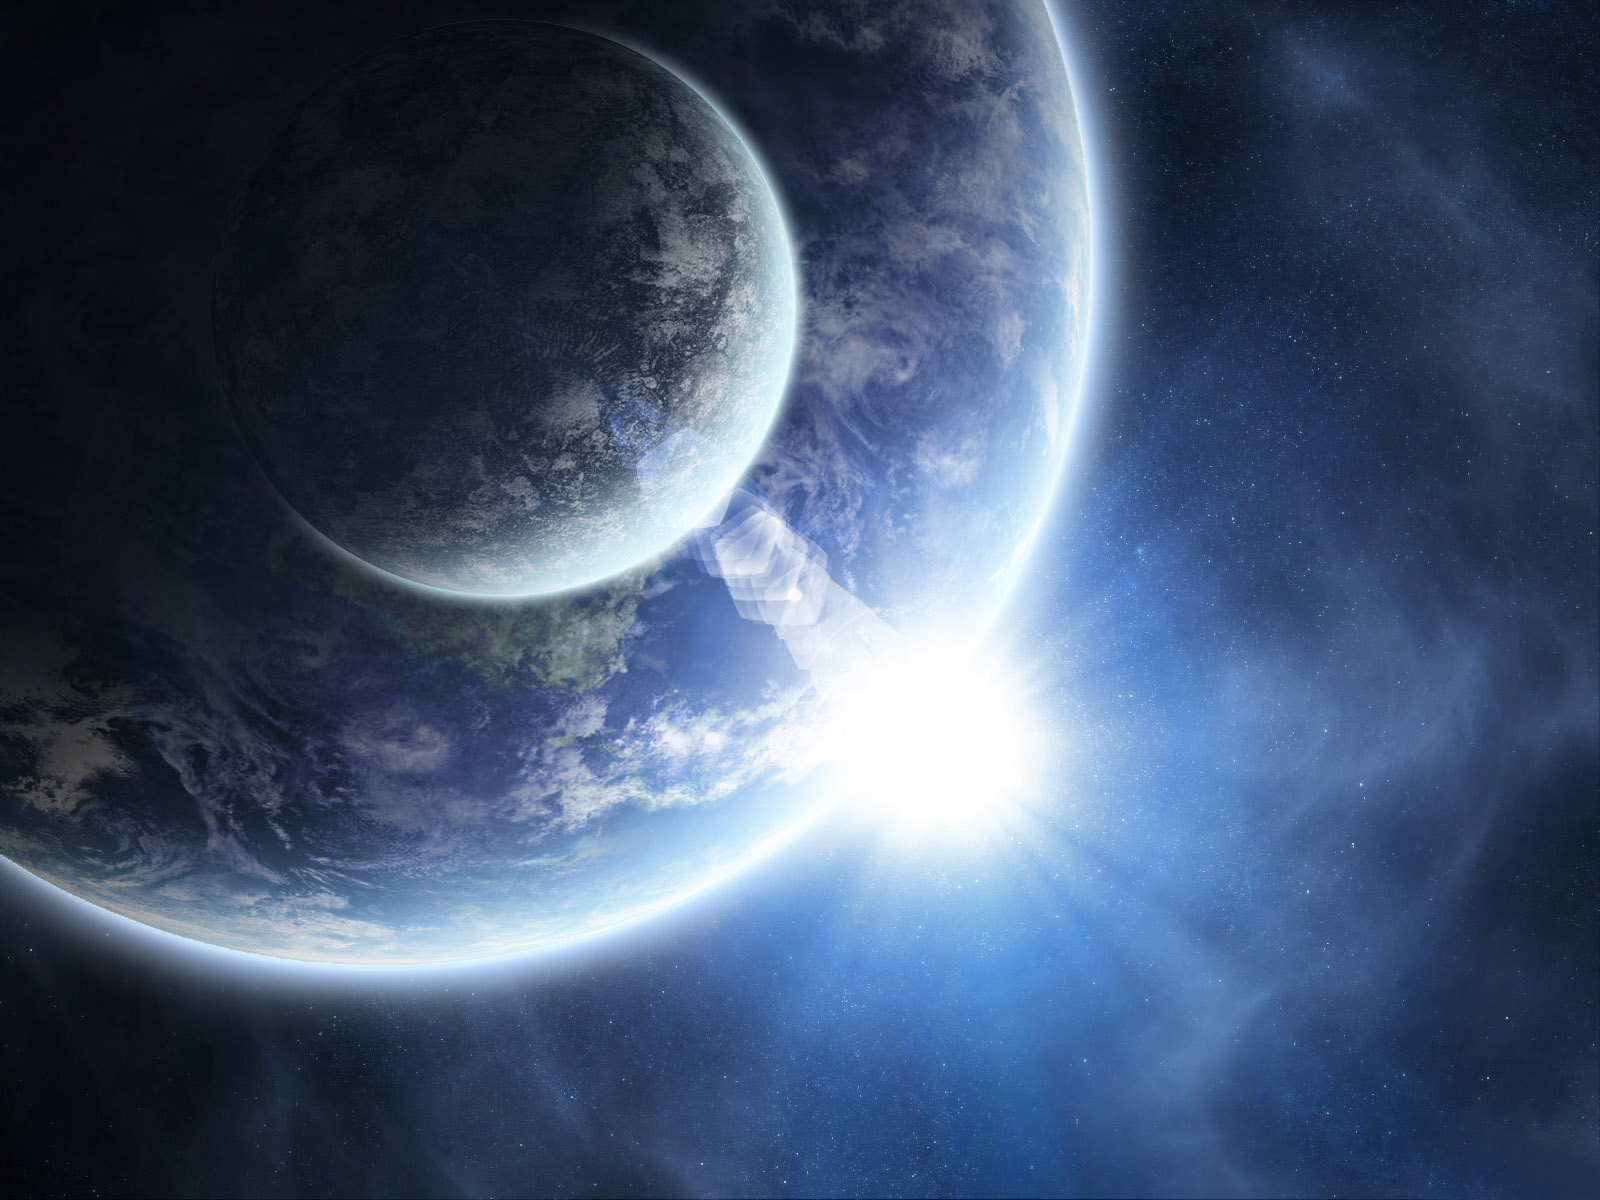 Universe Artistic Wallpapers HD 1600x Photo 33 of 54 1600x1200